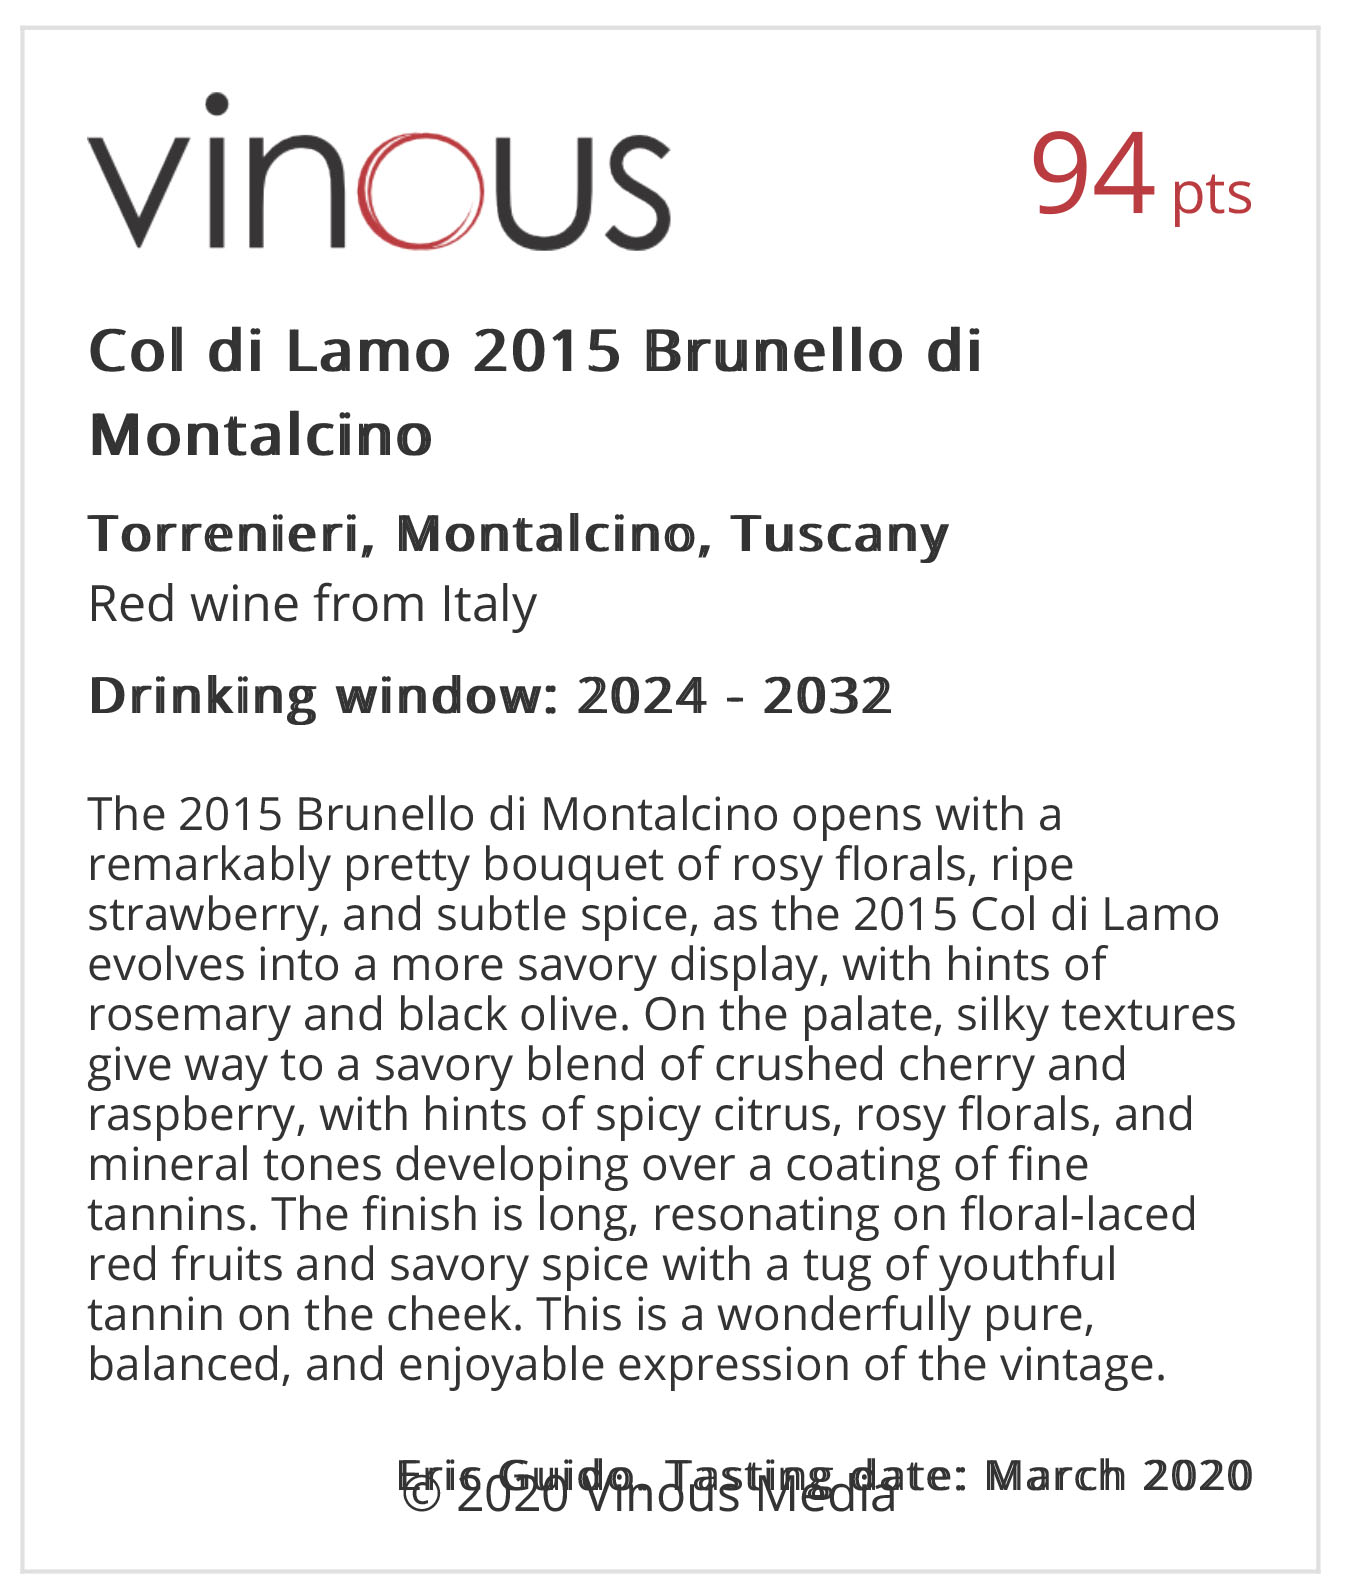 https://www.angeliniwine.com/wp-content/uploads/2020/11/Col-di-Lamo-2015-Brunello-di-Montalcino-Vinous-Explore-All-Things-Wine.jpg